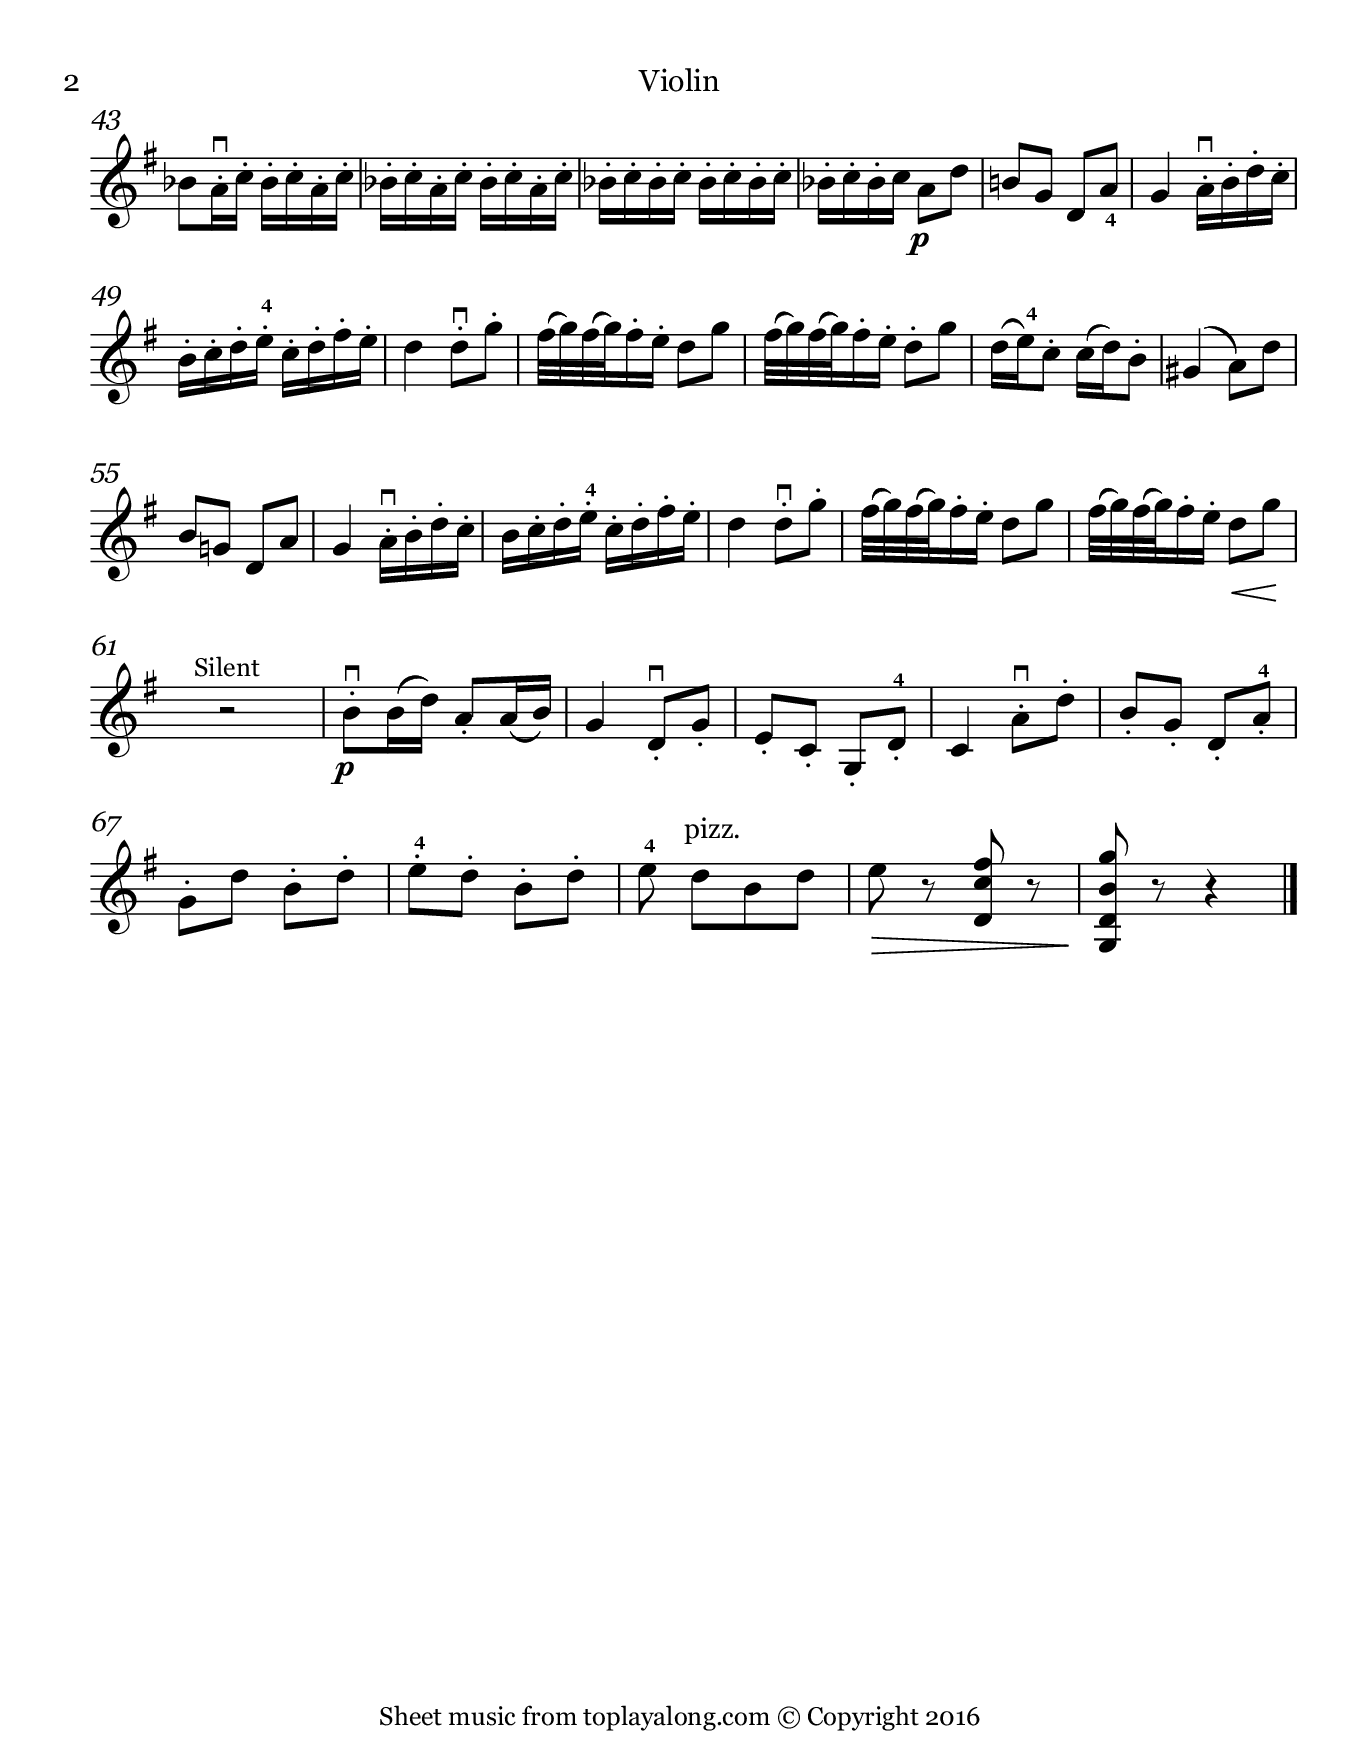 Gavotte from Mignon by Thomas. Sheet music for Violin, page 2.